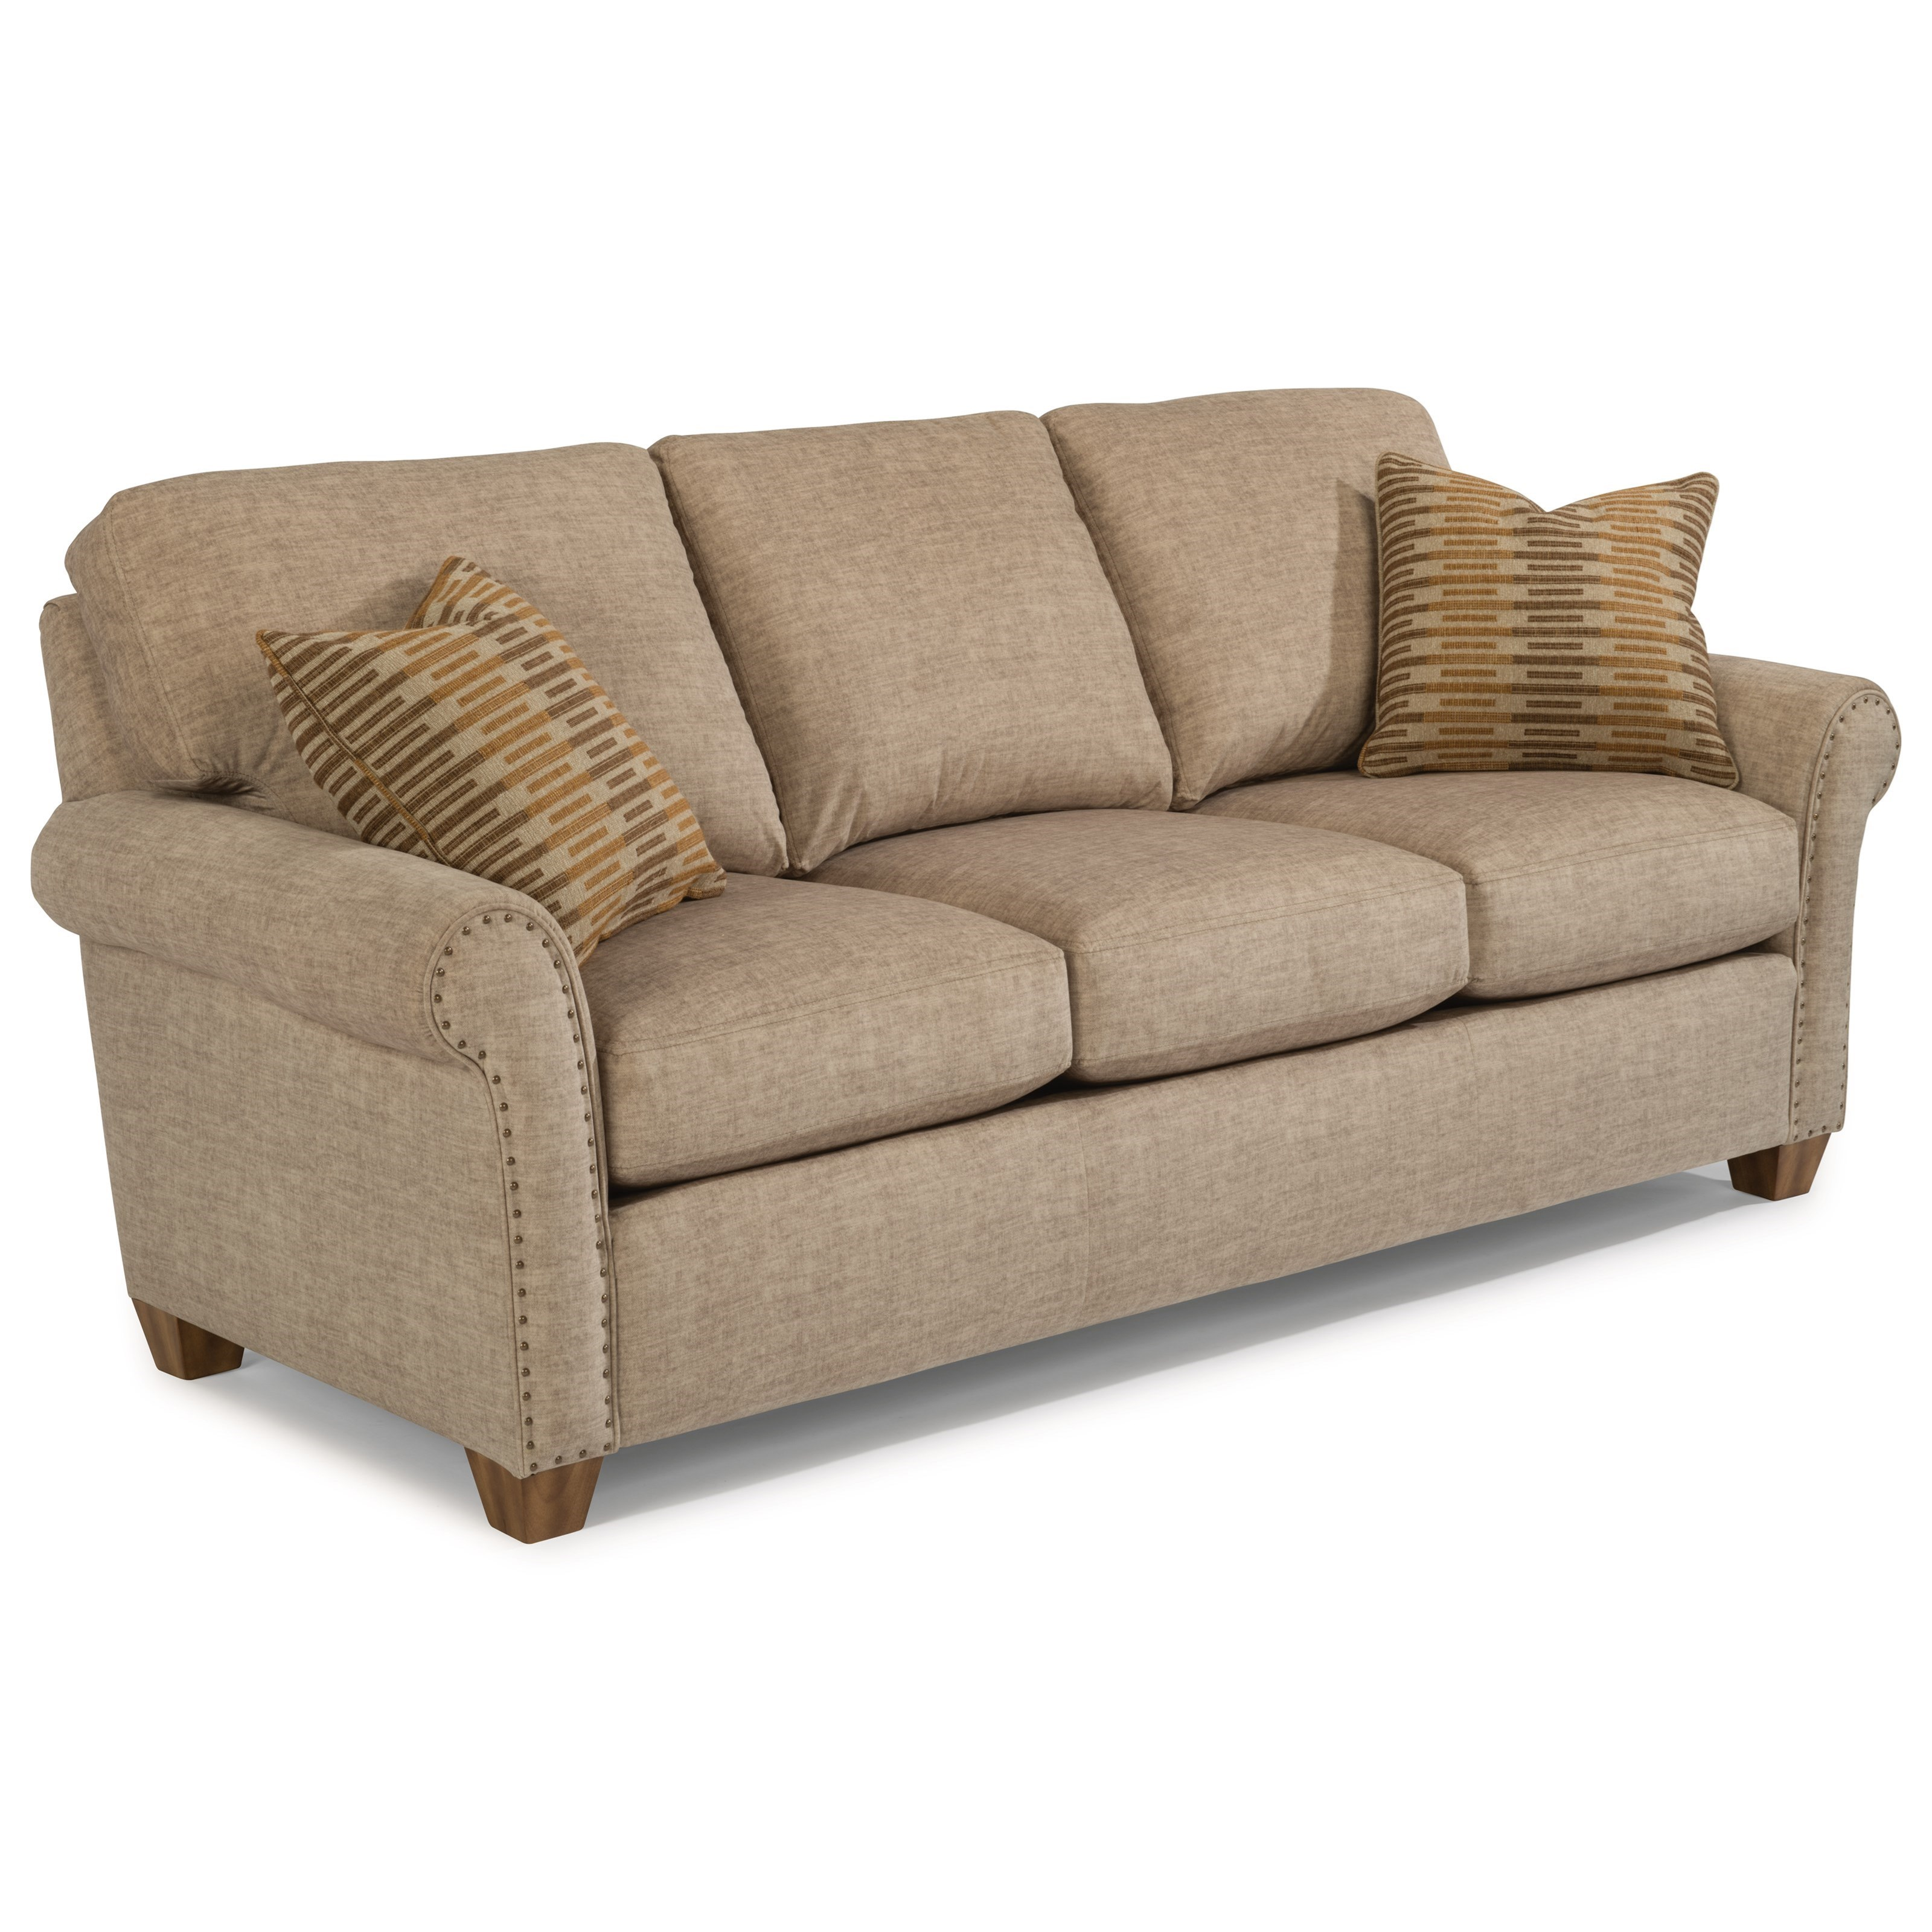 Flexsteel christine 5110 31 rolled arm sofa with nailhead for Sofa with studs